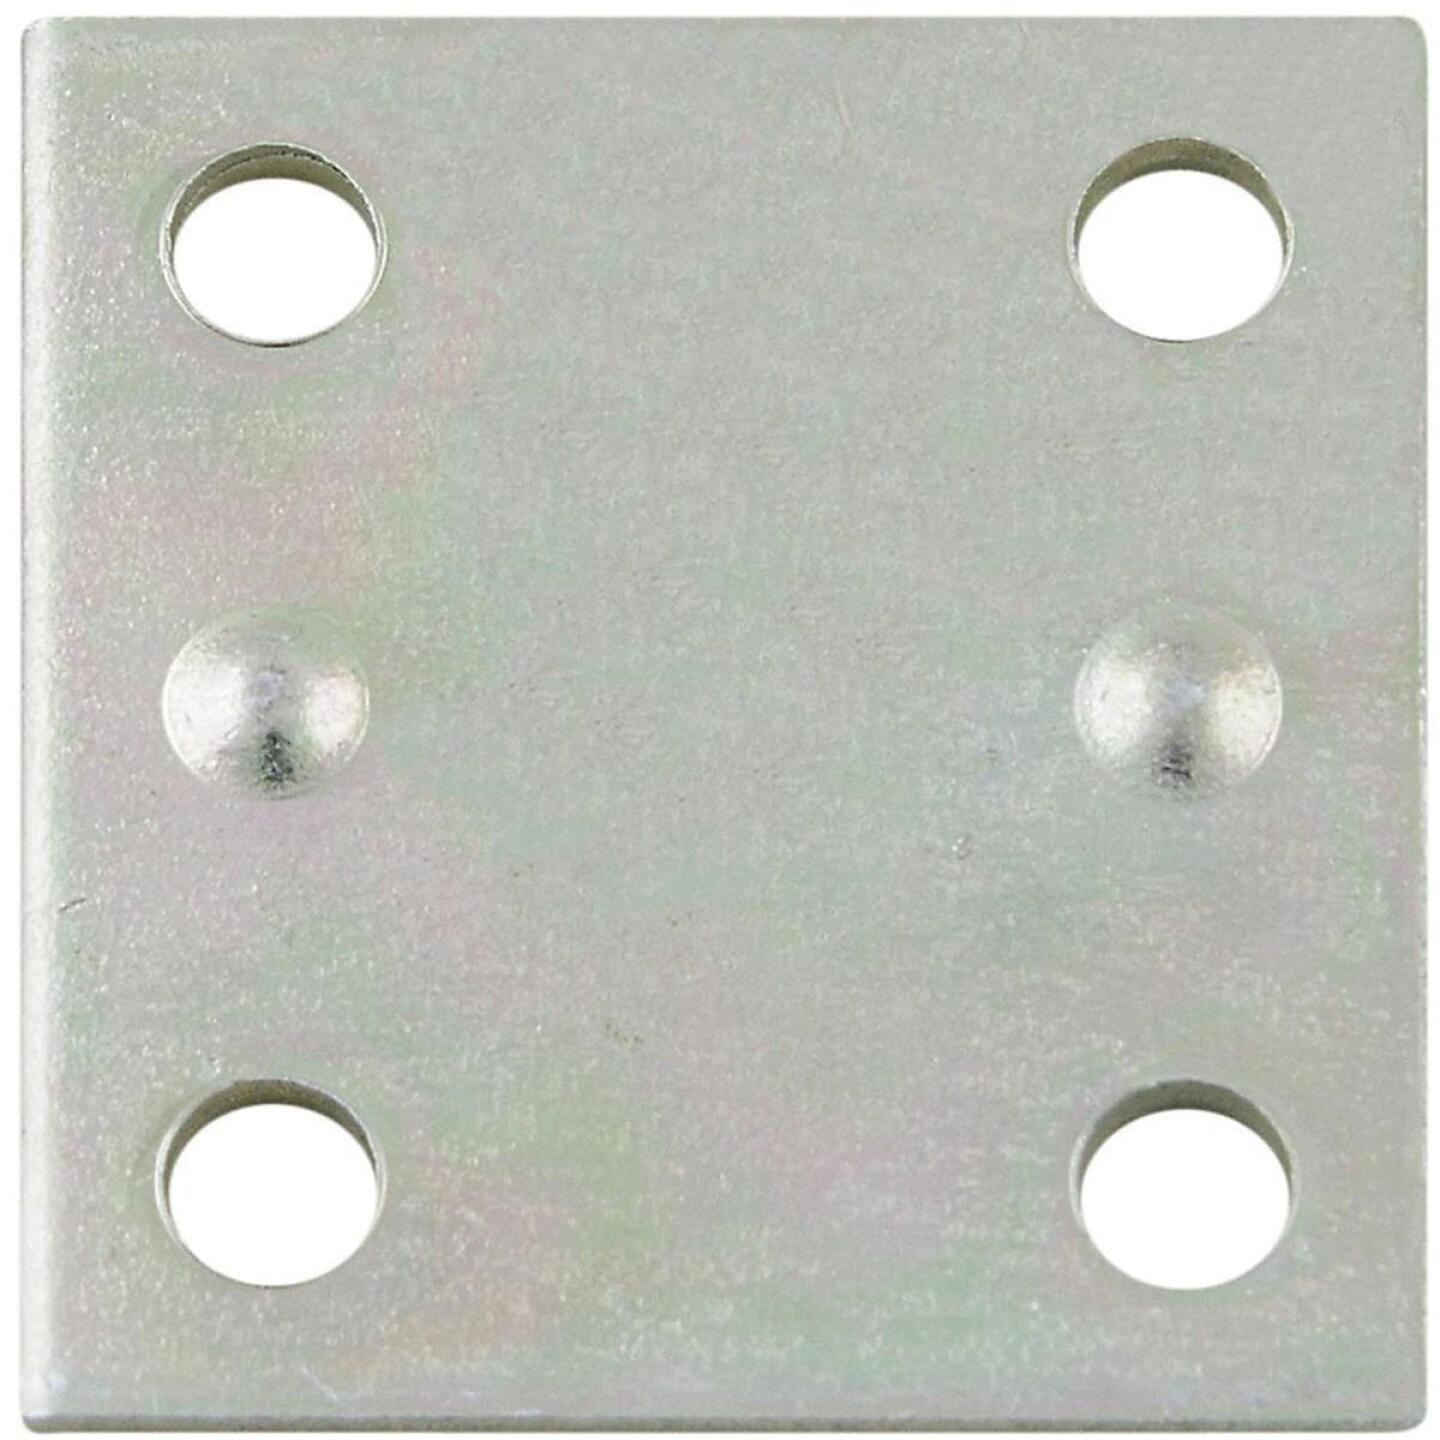 National Catalog V119 1-1/2 In. x 1-3/8 In. Mending Plate (4-Count) Image 1